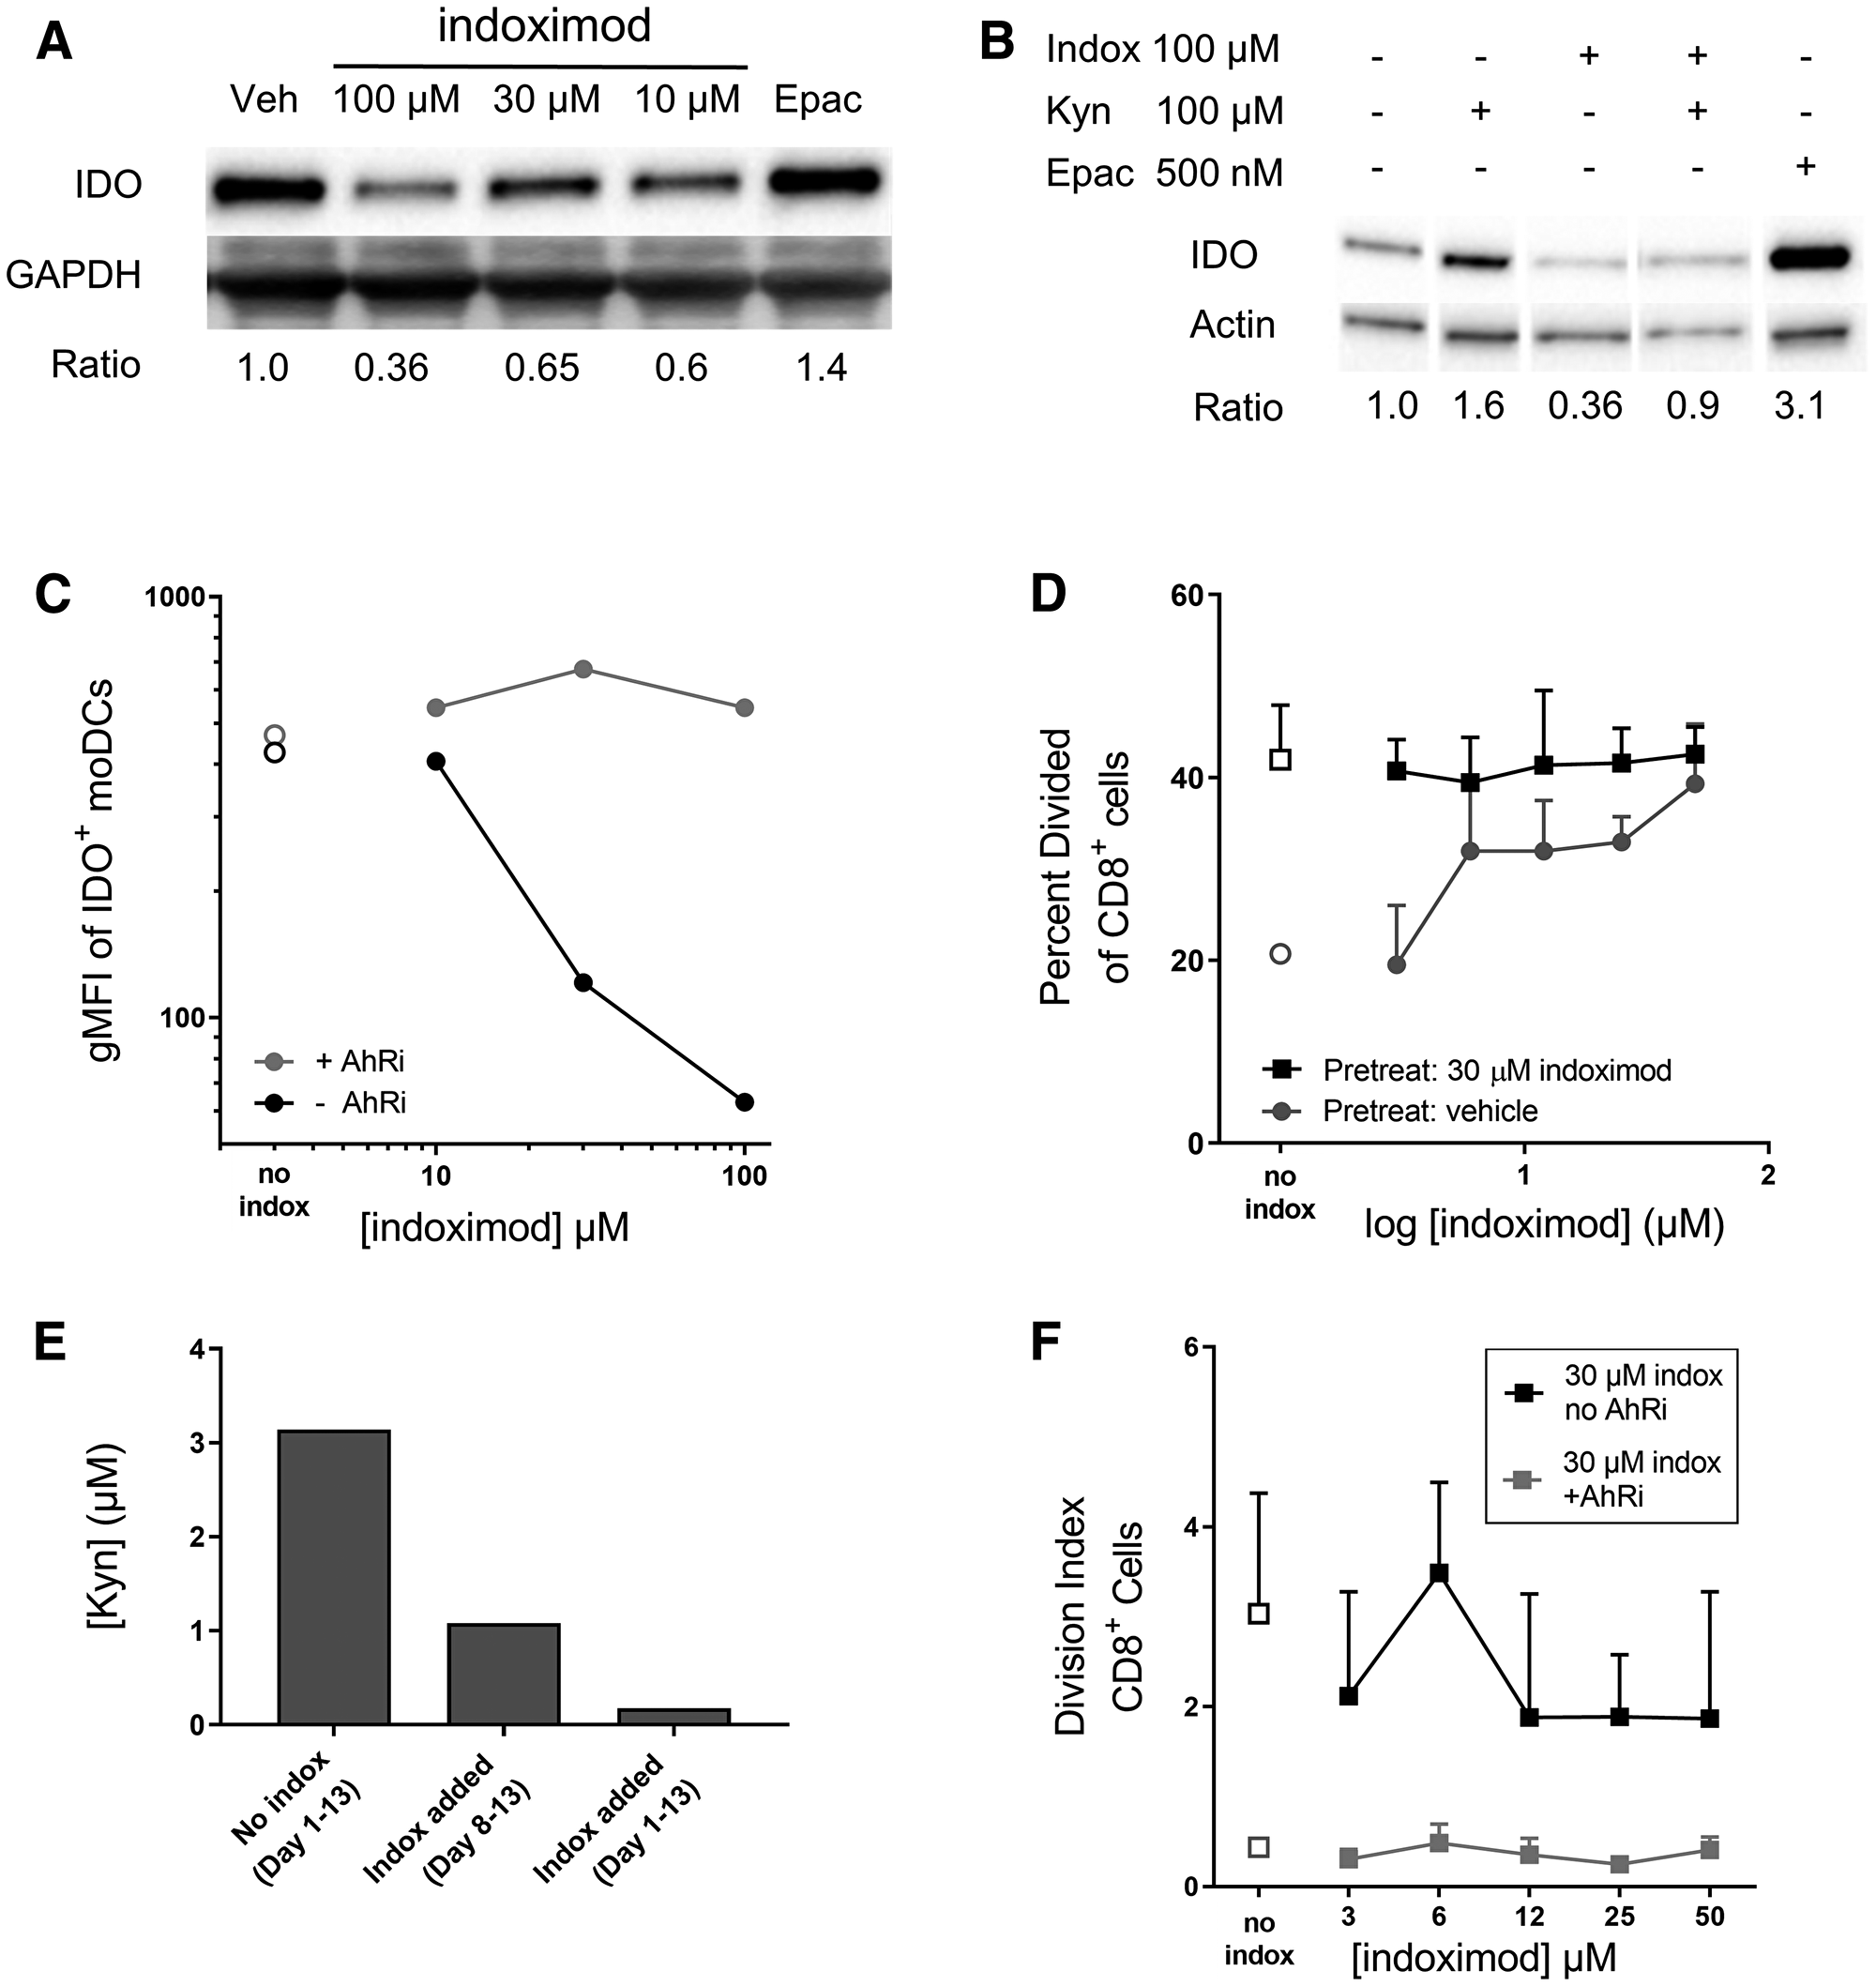 Indoximod downregulates IDO expression in moDC in an AhR-dependent manner.